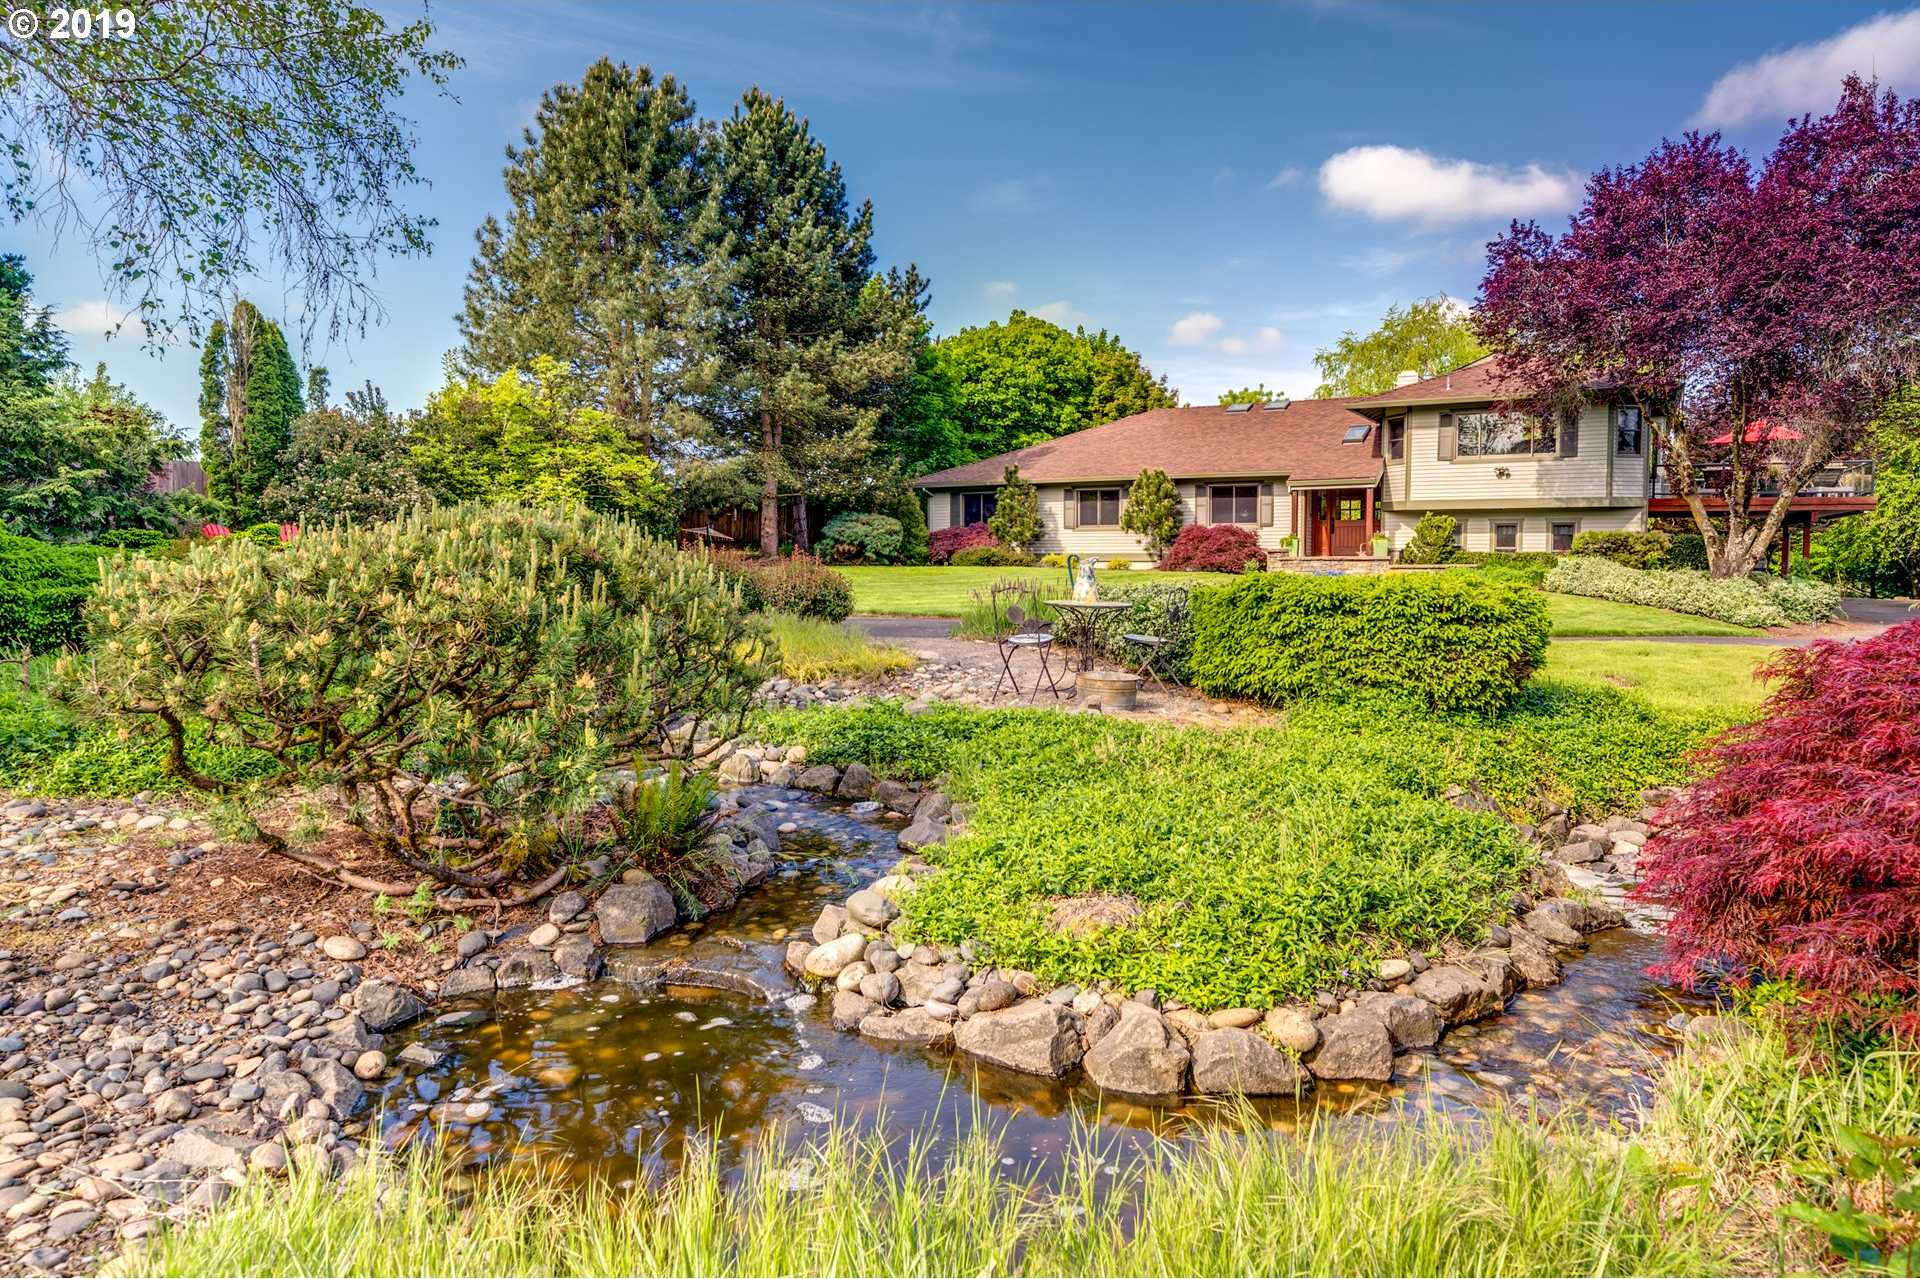 $973,500 - 3Br/3Ba -  for Sale in Tualatin